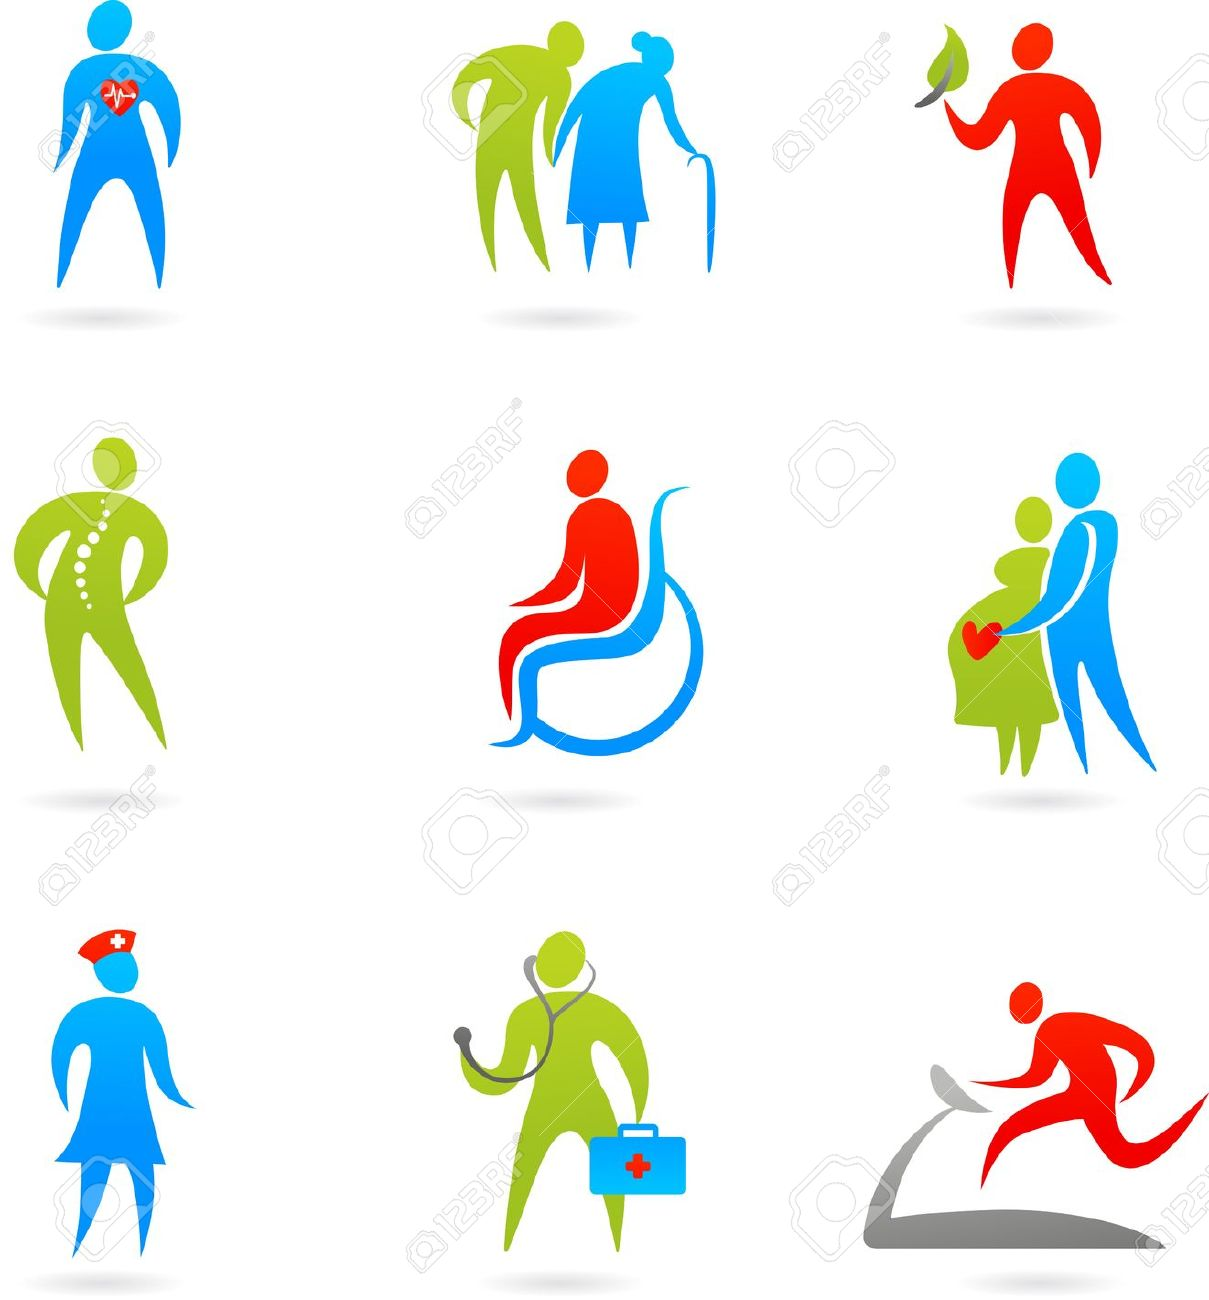 elderly care images care for the elderly clipart clipground 569